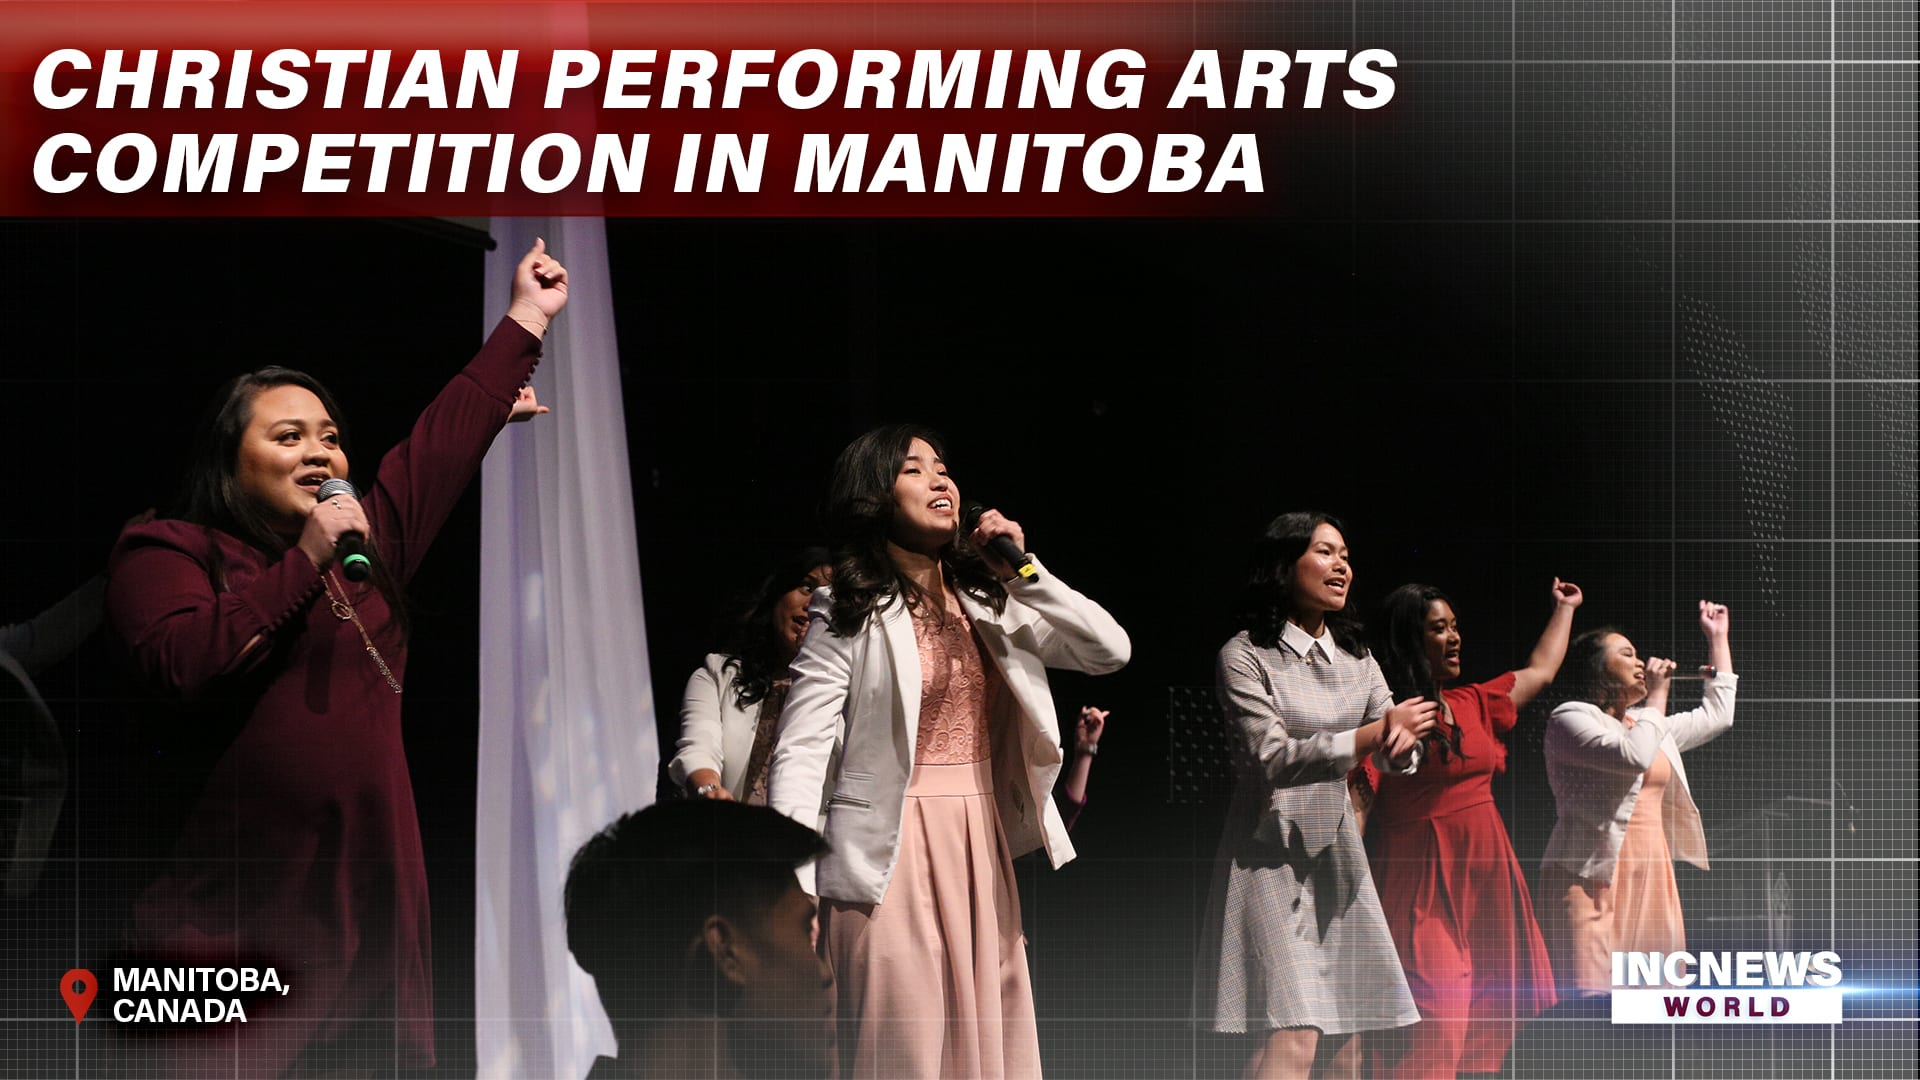 CHRISTIAN PERFORMING ARTS COMPETITION IN MANITOBA